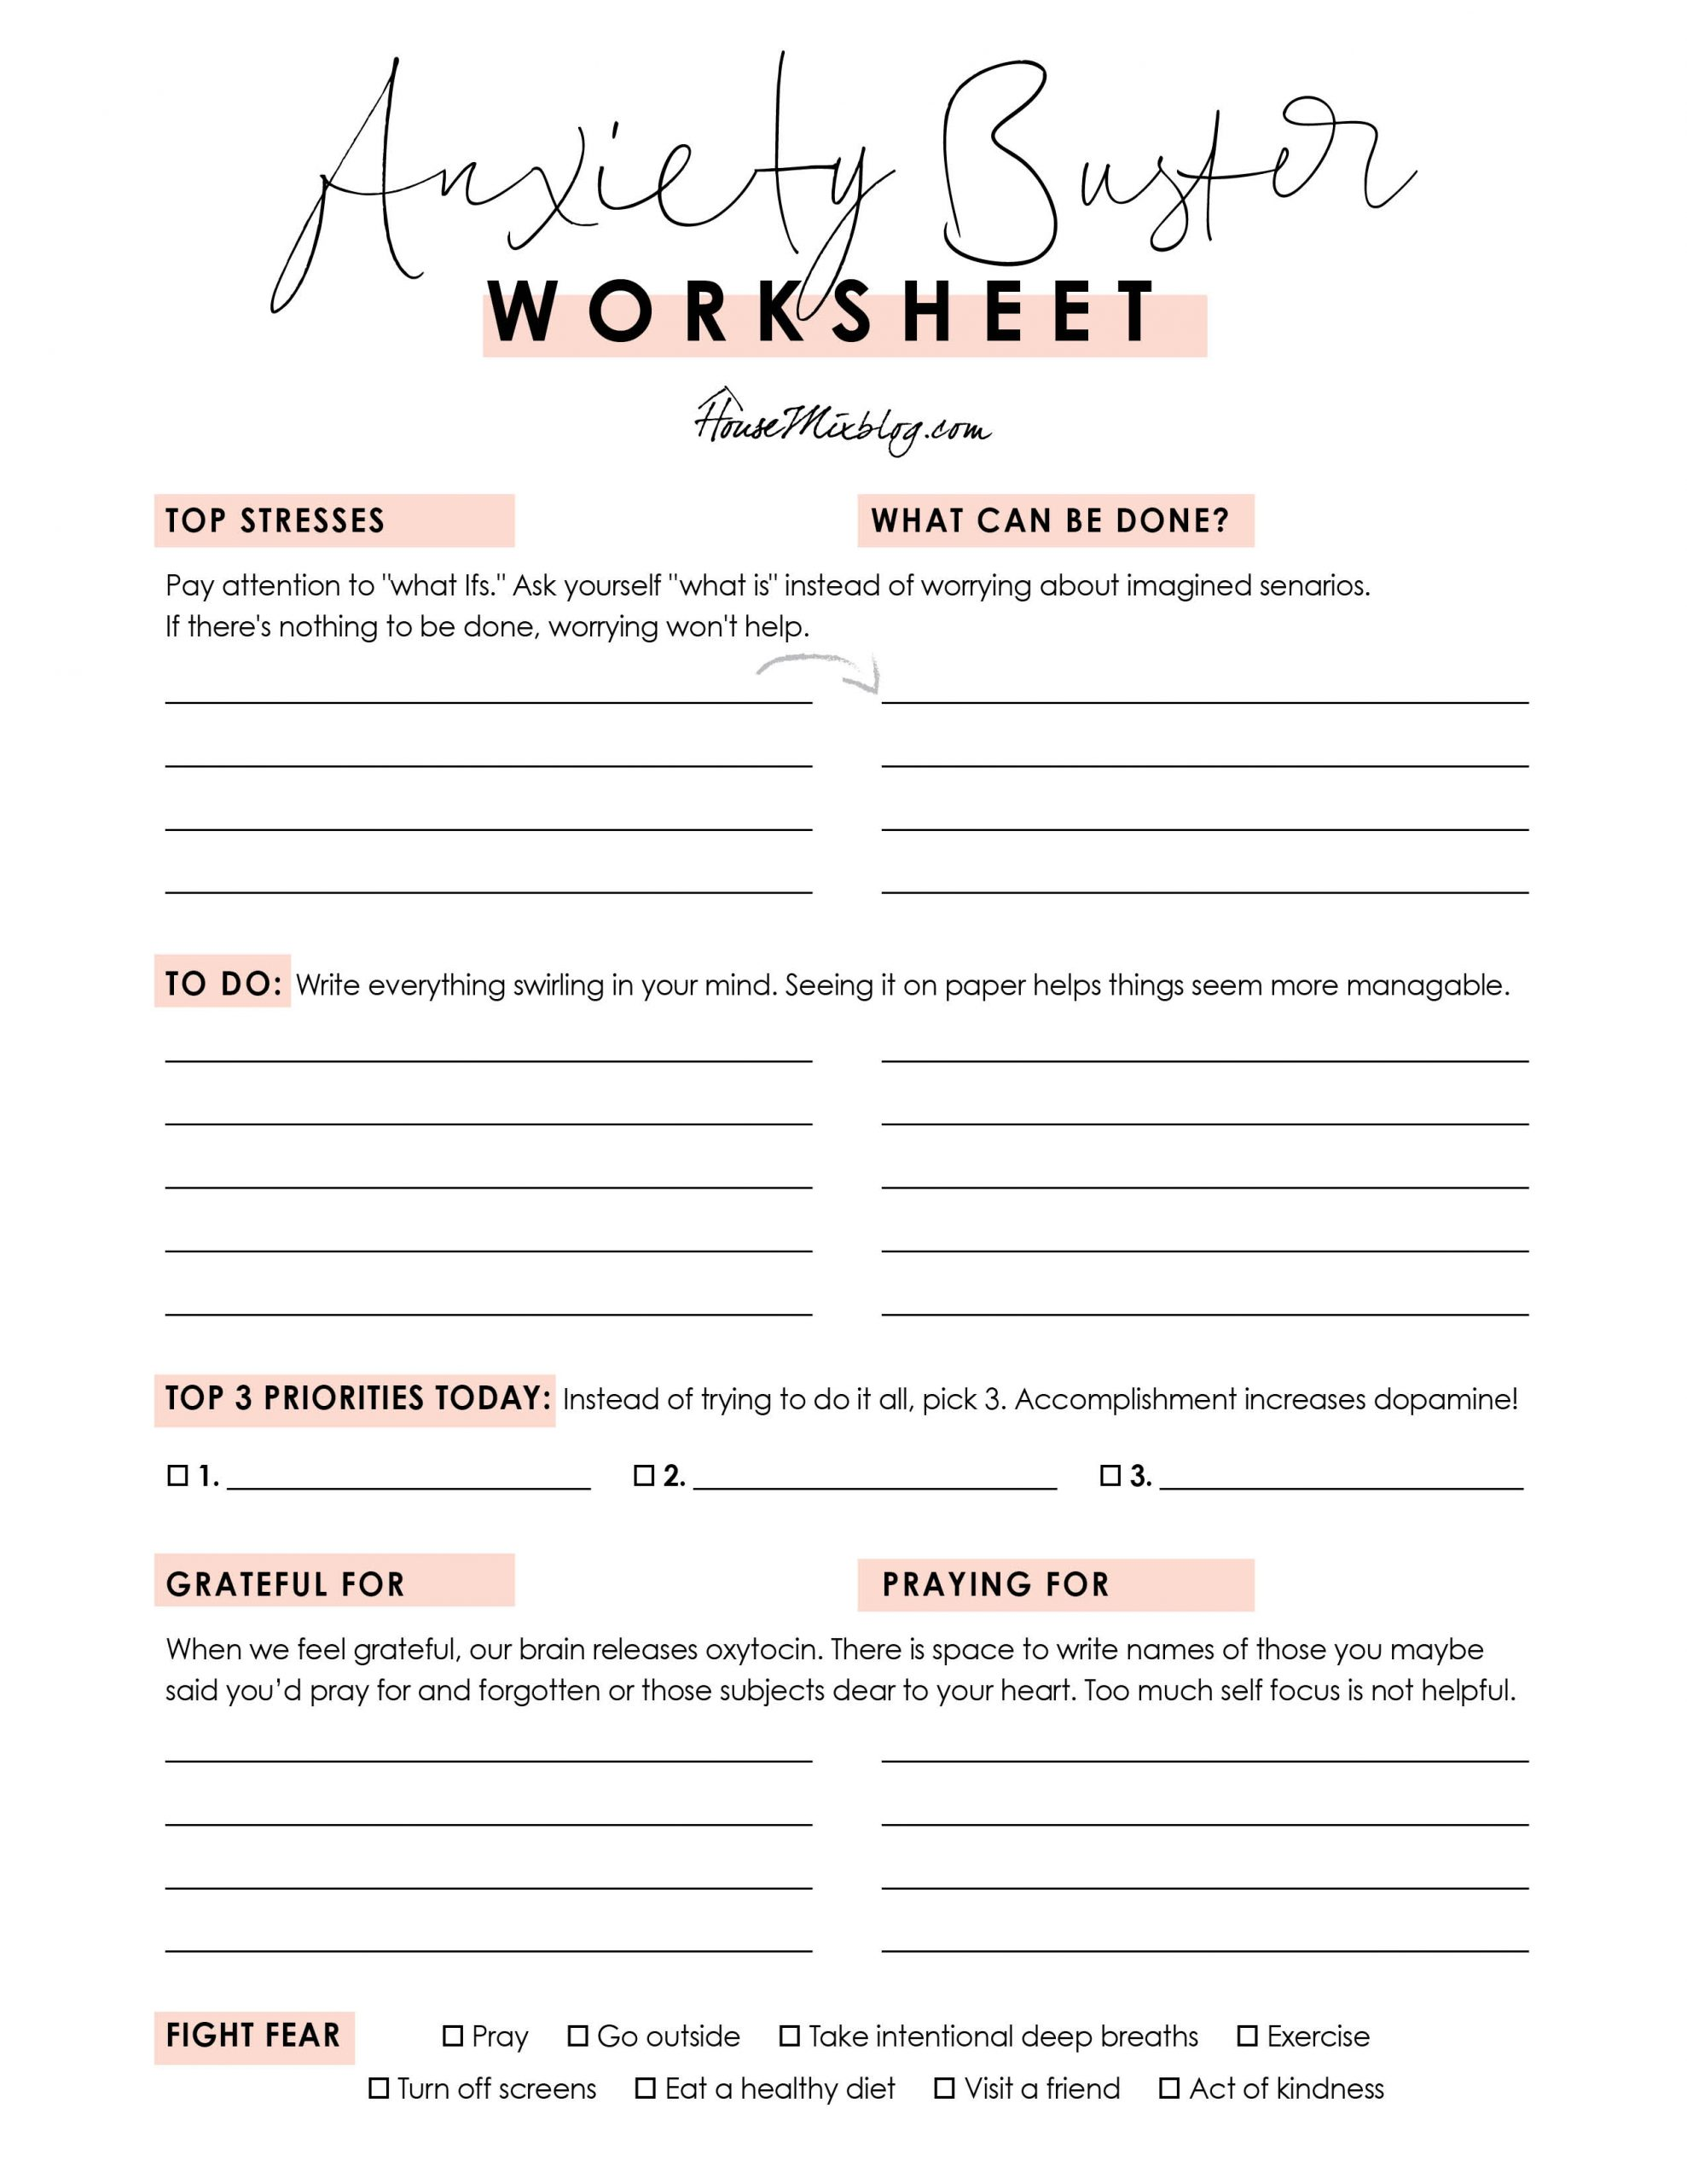 Anxiety buster worksheet - Free printable to help with stress and fear